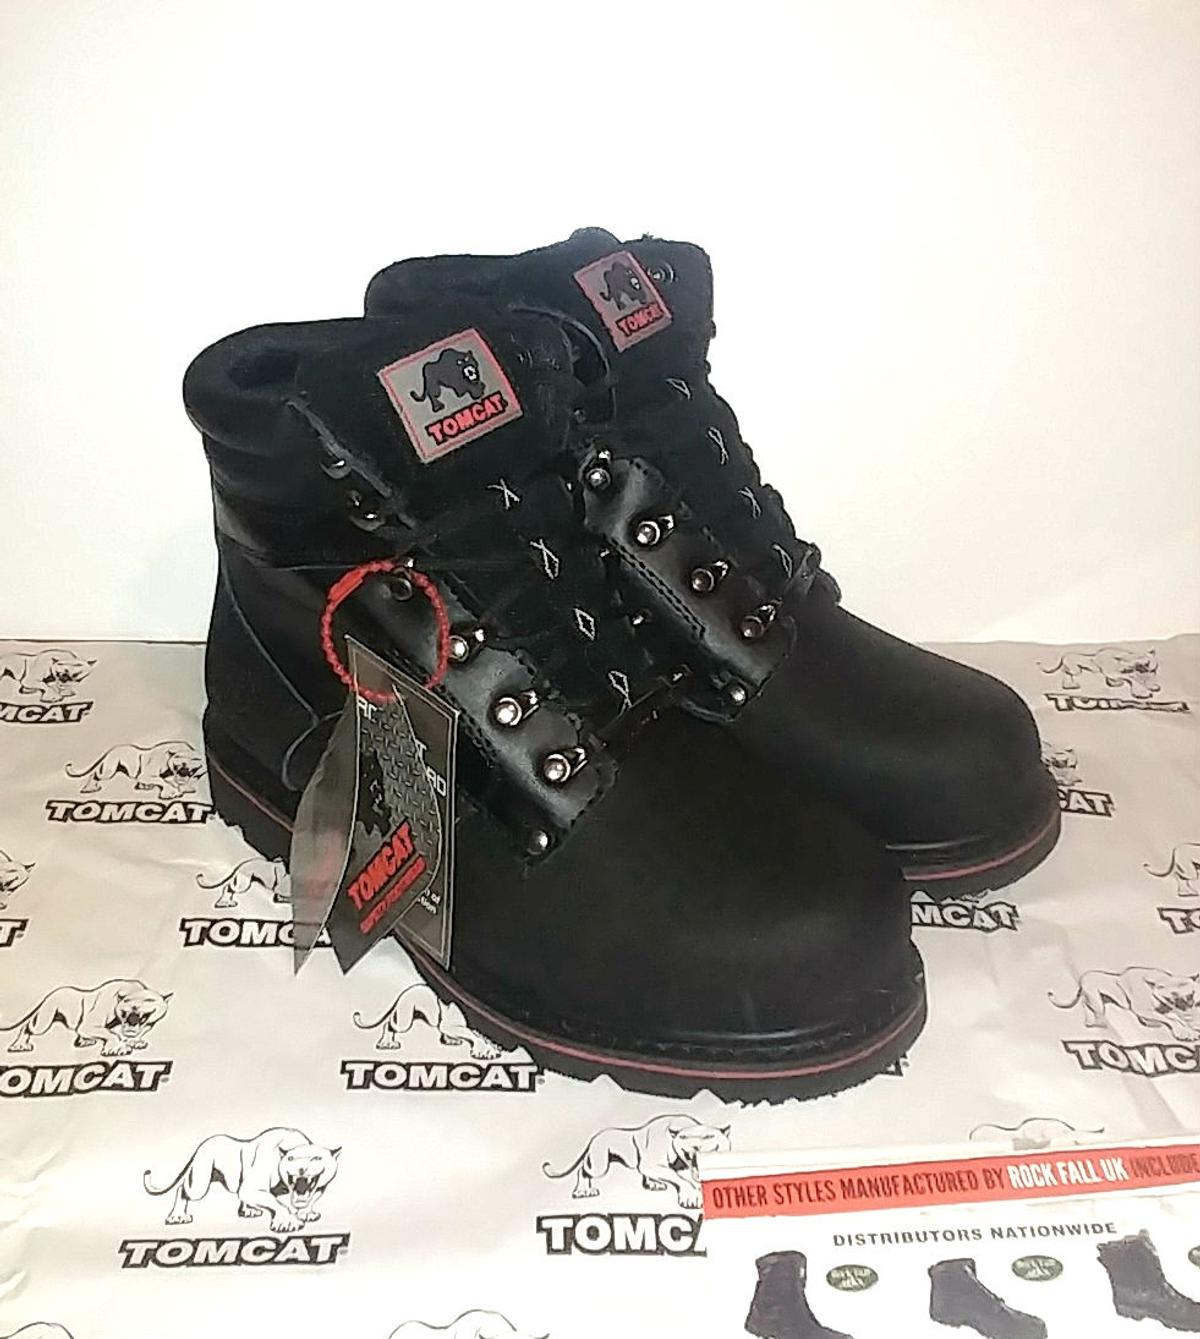 c3eddcb84cd RockFall Tomcat Work Boots Shoes SteelToe NEW in L36 Knowsley for ...